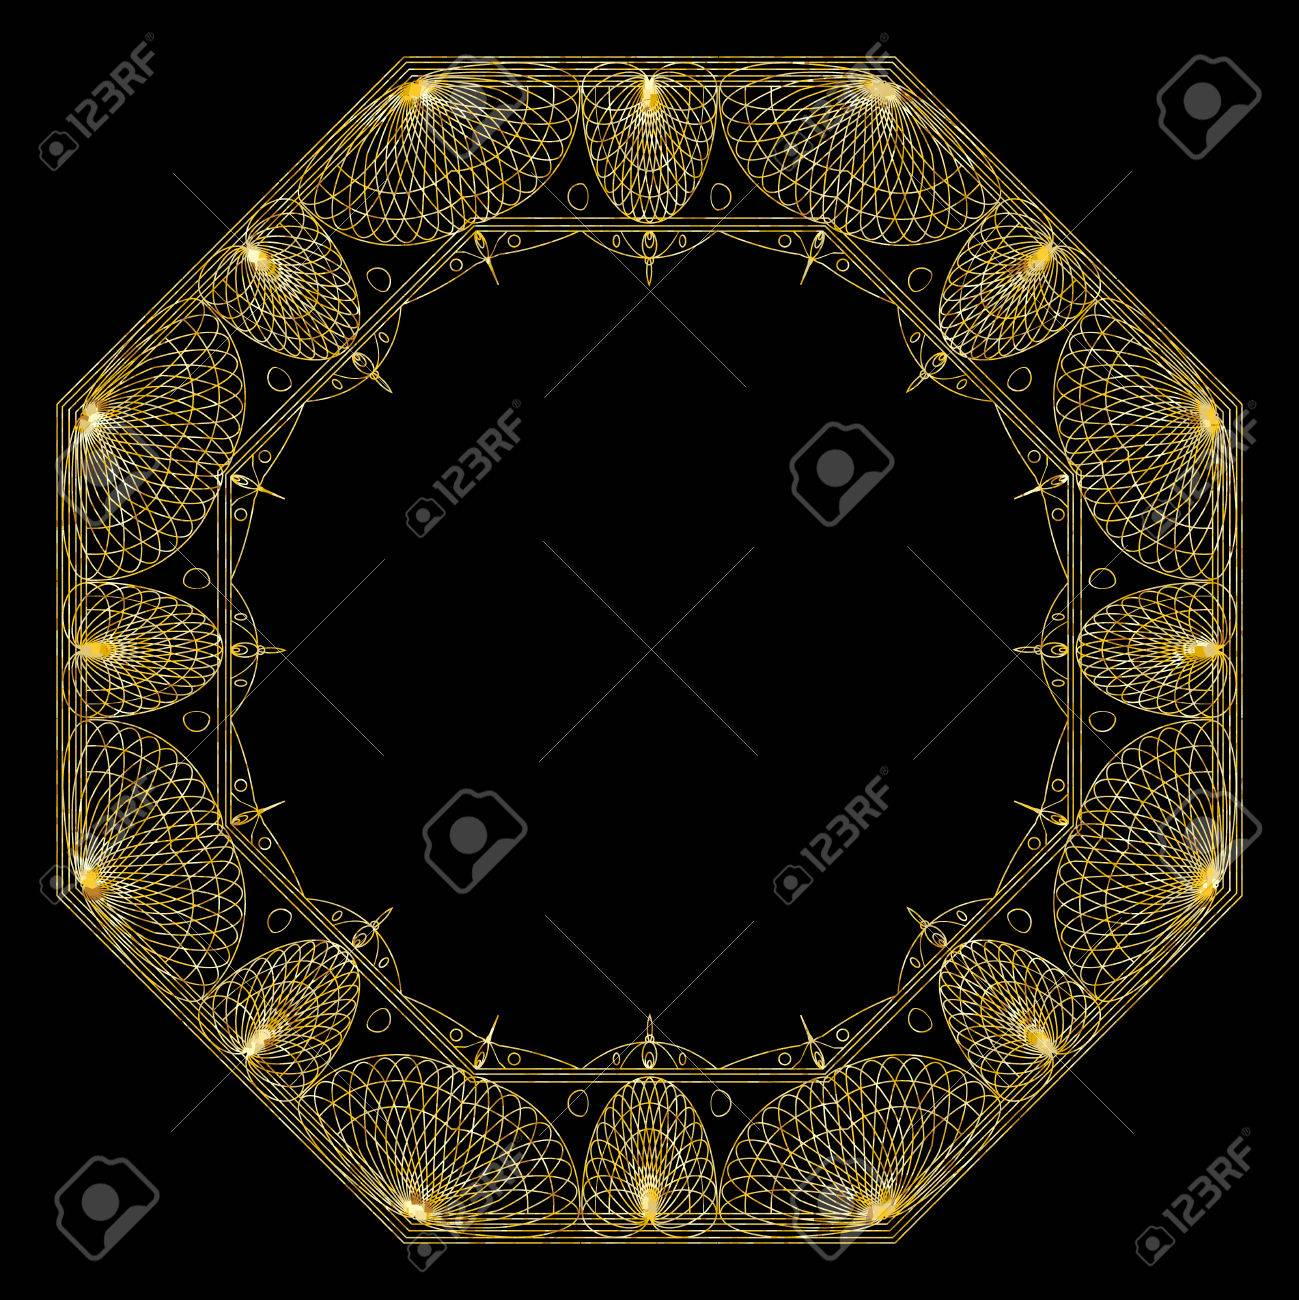 Gold Mandala For Coloring Book Decorative Black Round Outline